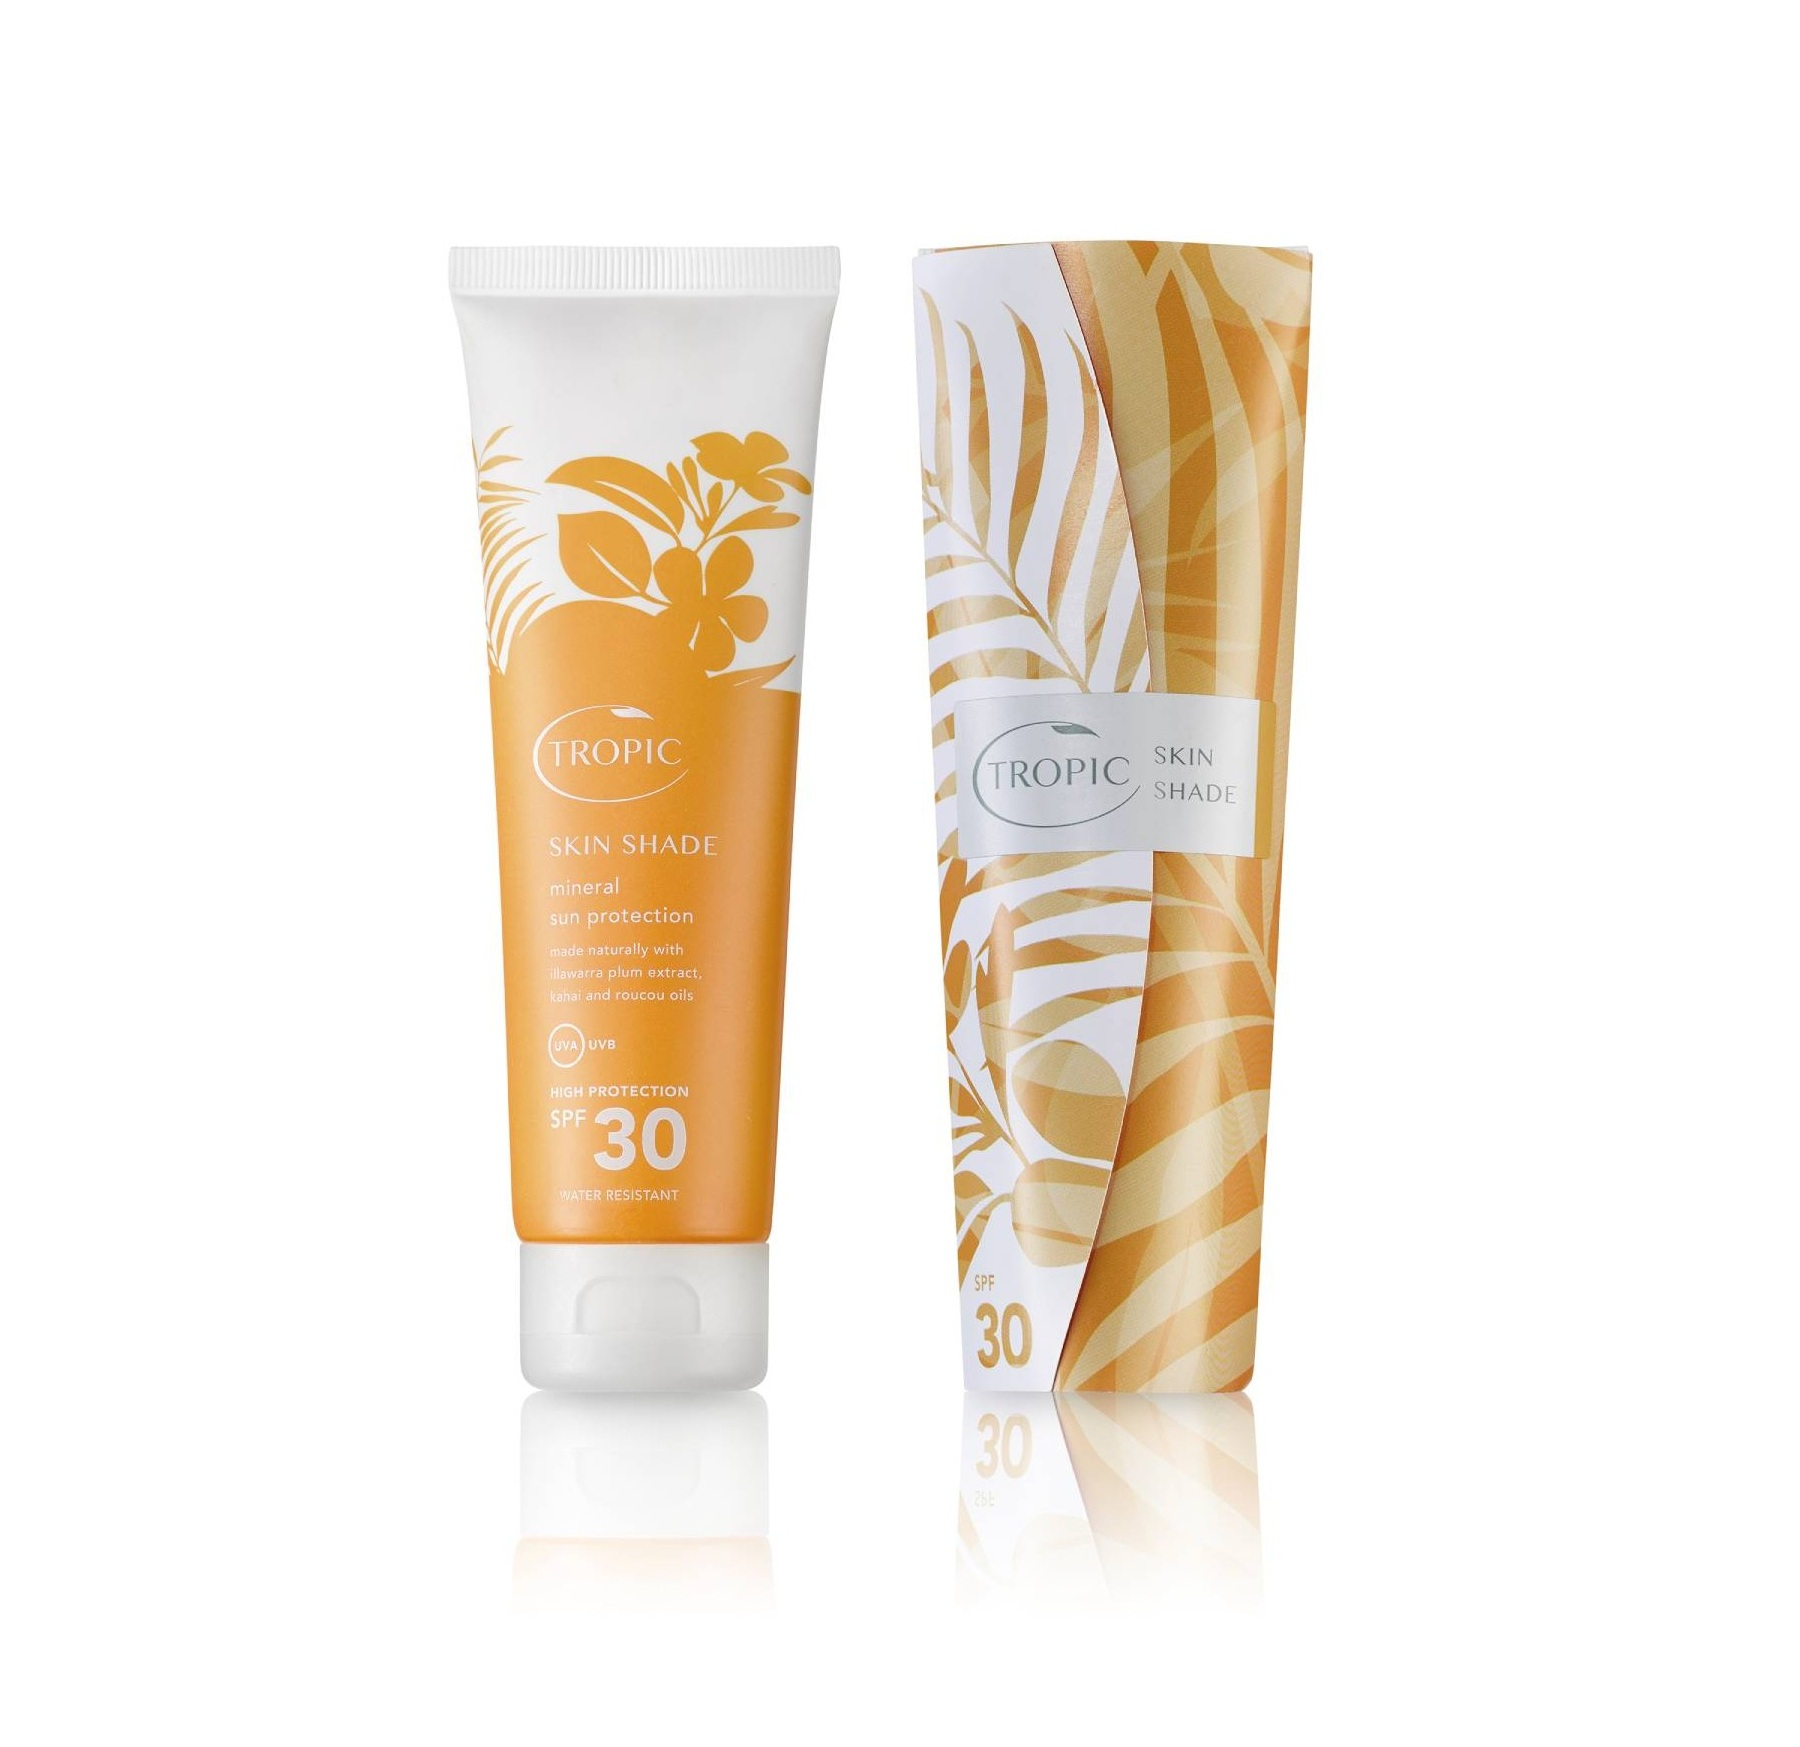 Tropic Skin Shade Mineral Sun Protection SPF30 - Made with sustainable ingredients, this water resistant sun cream contains zinc oxide and titanium dioxide for mineral protection, omega 6-rich Illawarra plum extract, kahai oil, which is packed with vitamin E, roucou oil, with high levels of beta-carotene, grape seed oil, jojoba oil and coconut emollients, for super hydrating sun protection. Tropic sunscreen absorbs really easily, doesn't leave that dreaded white film behind, smells like the holidays, comes in a pretty, recyclable bottle, is made fresh in Surrey and you can choose between SPF15, 30 or 50, according to your needs. £28